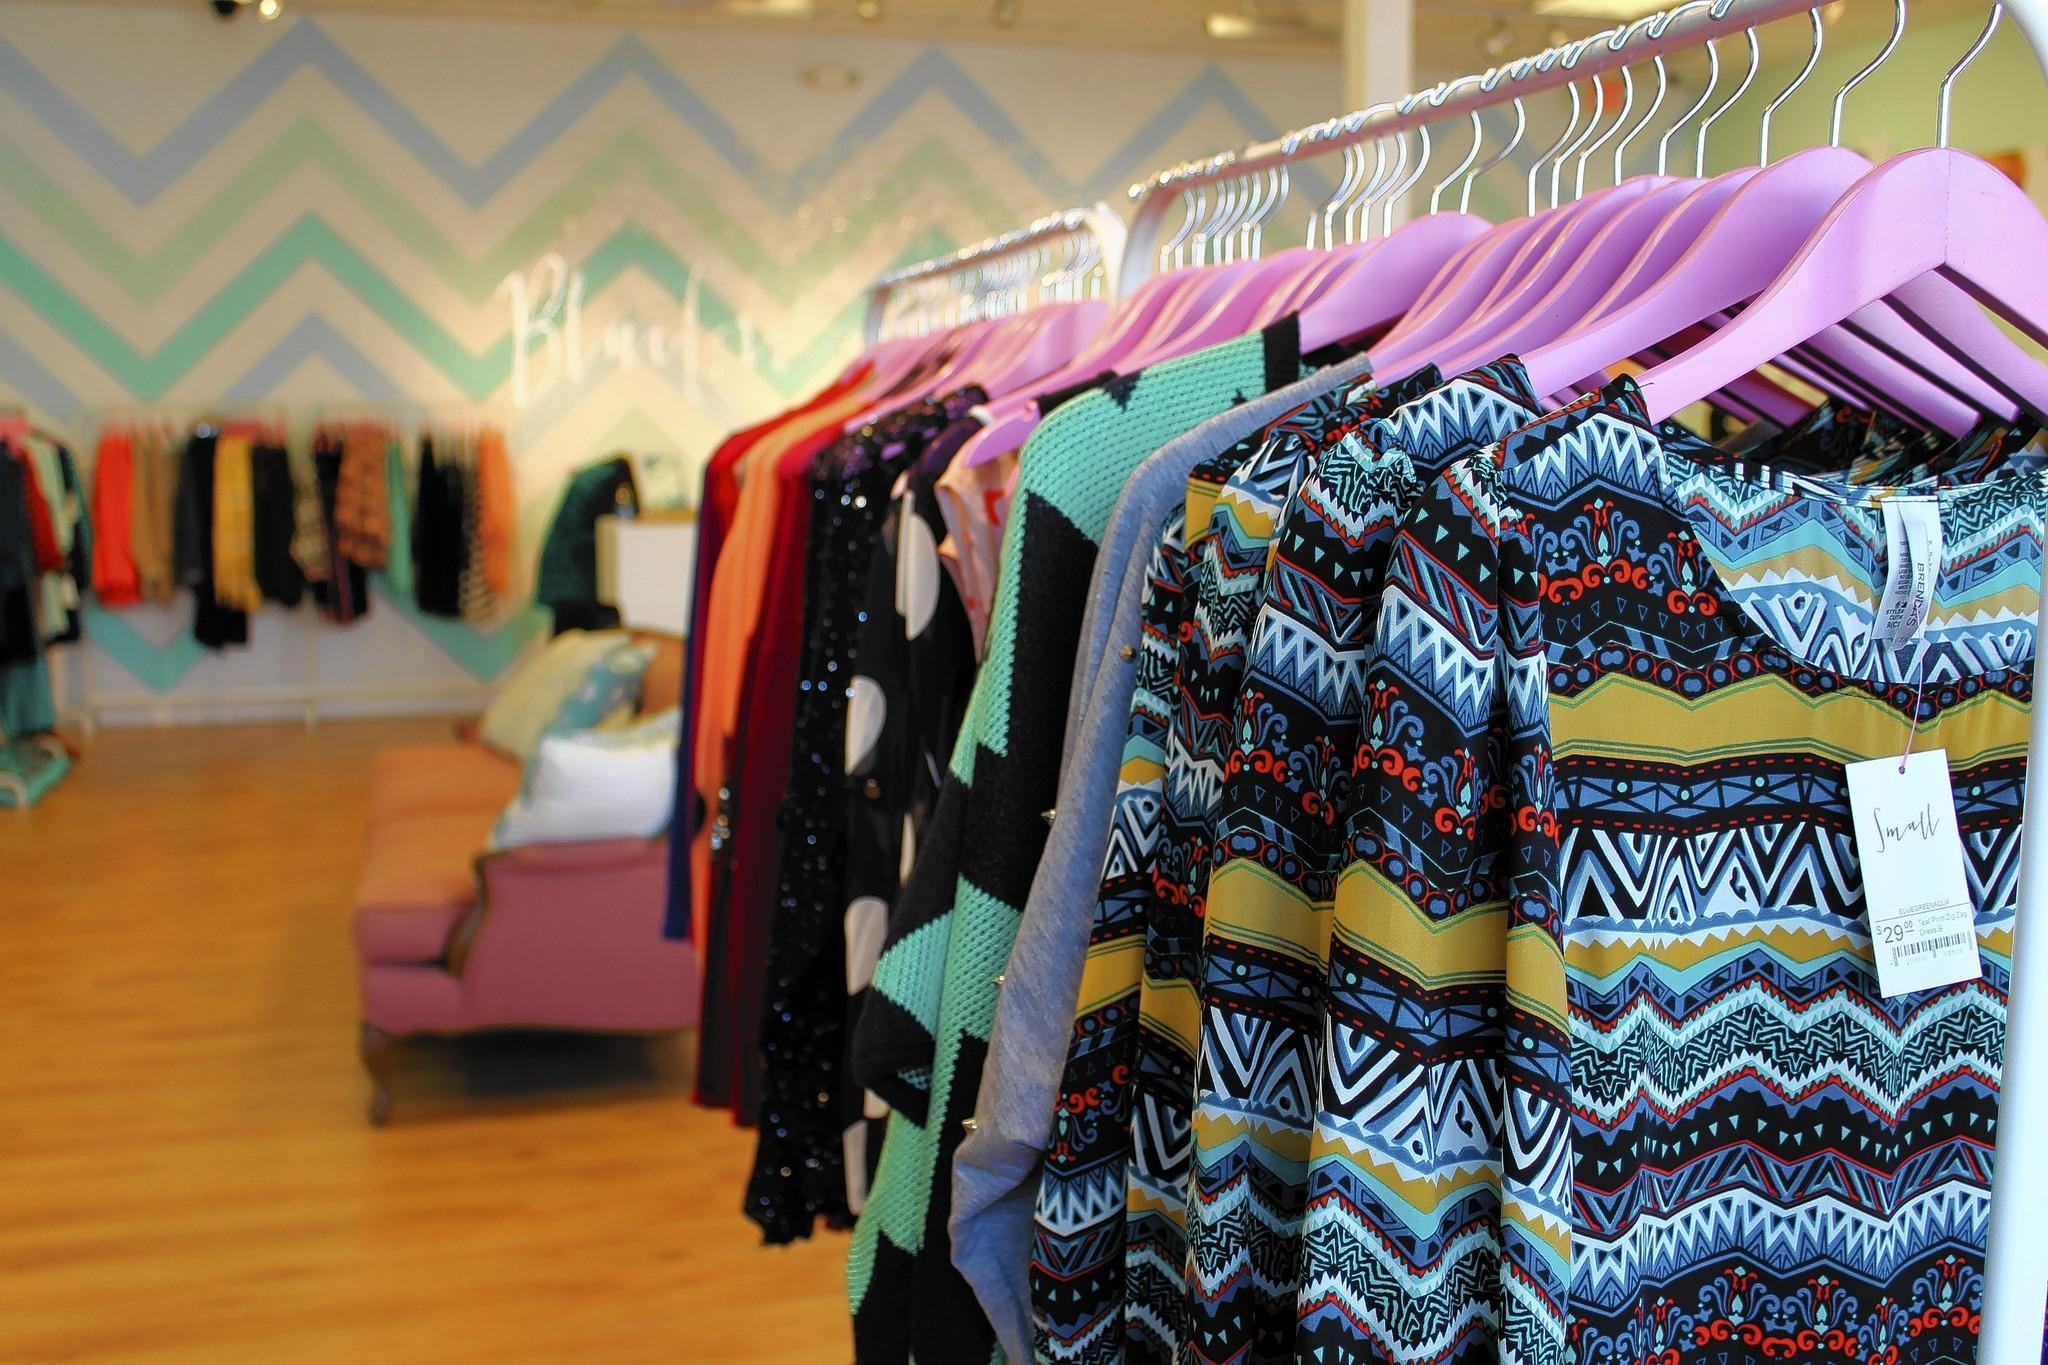 Blue Green Aqua, a women's fashion boutique, opened in New Town in Williamsburg in October.